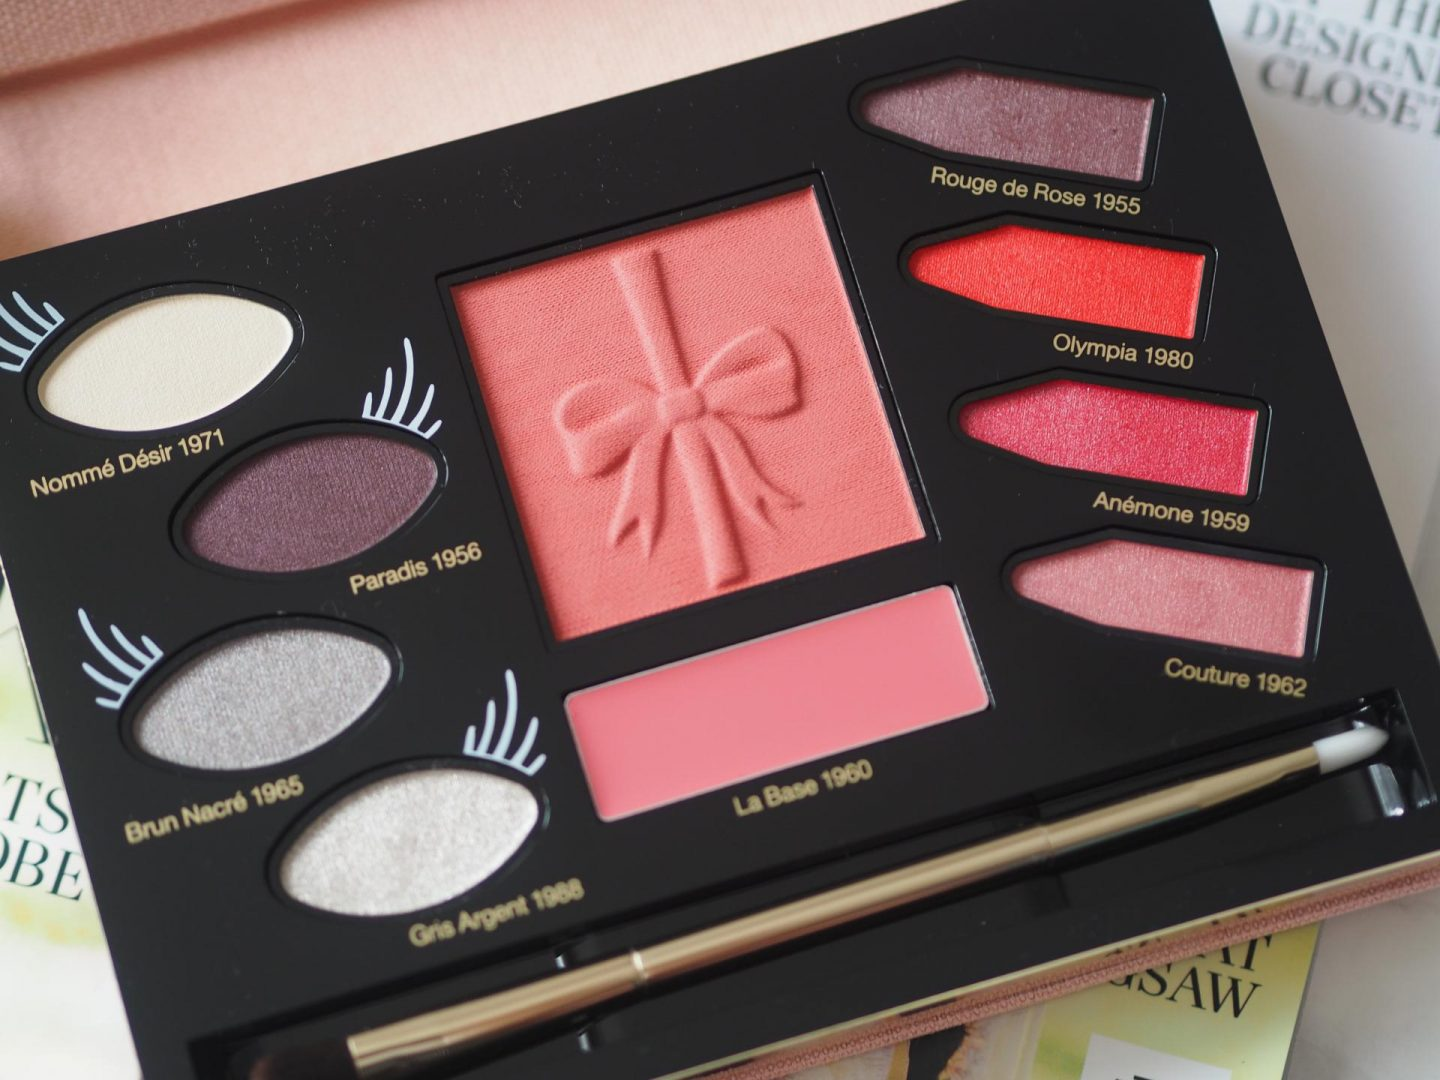 New Make-Up Products - Product: Lancôme Olympia Le Tan's Wonderland Palette